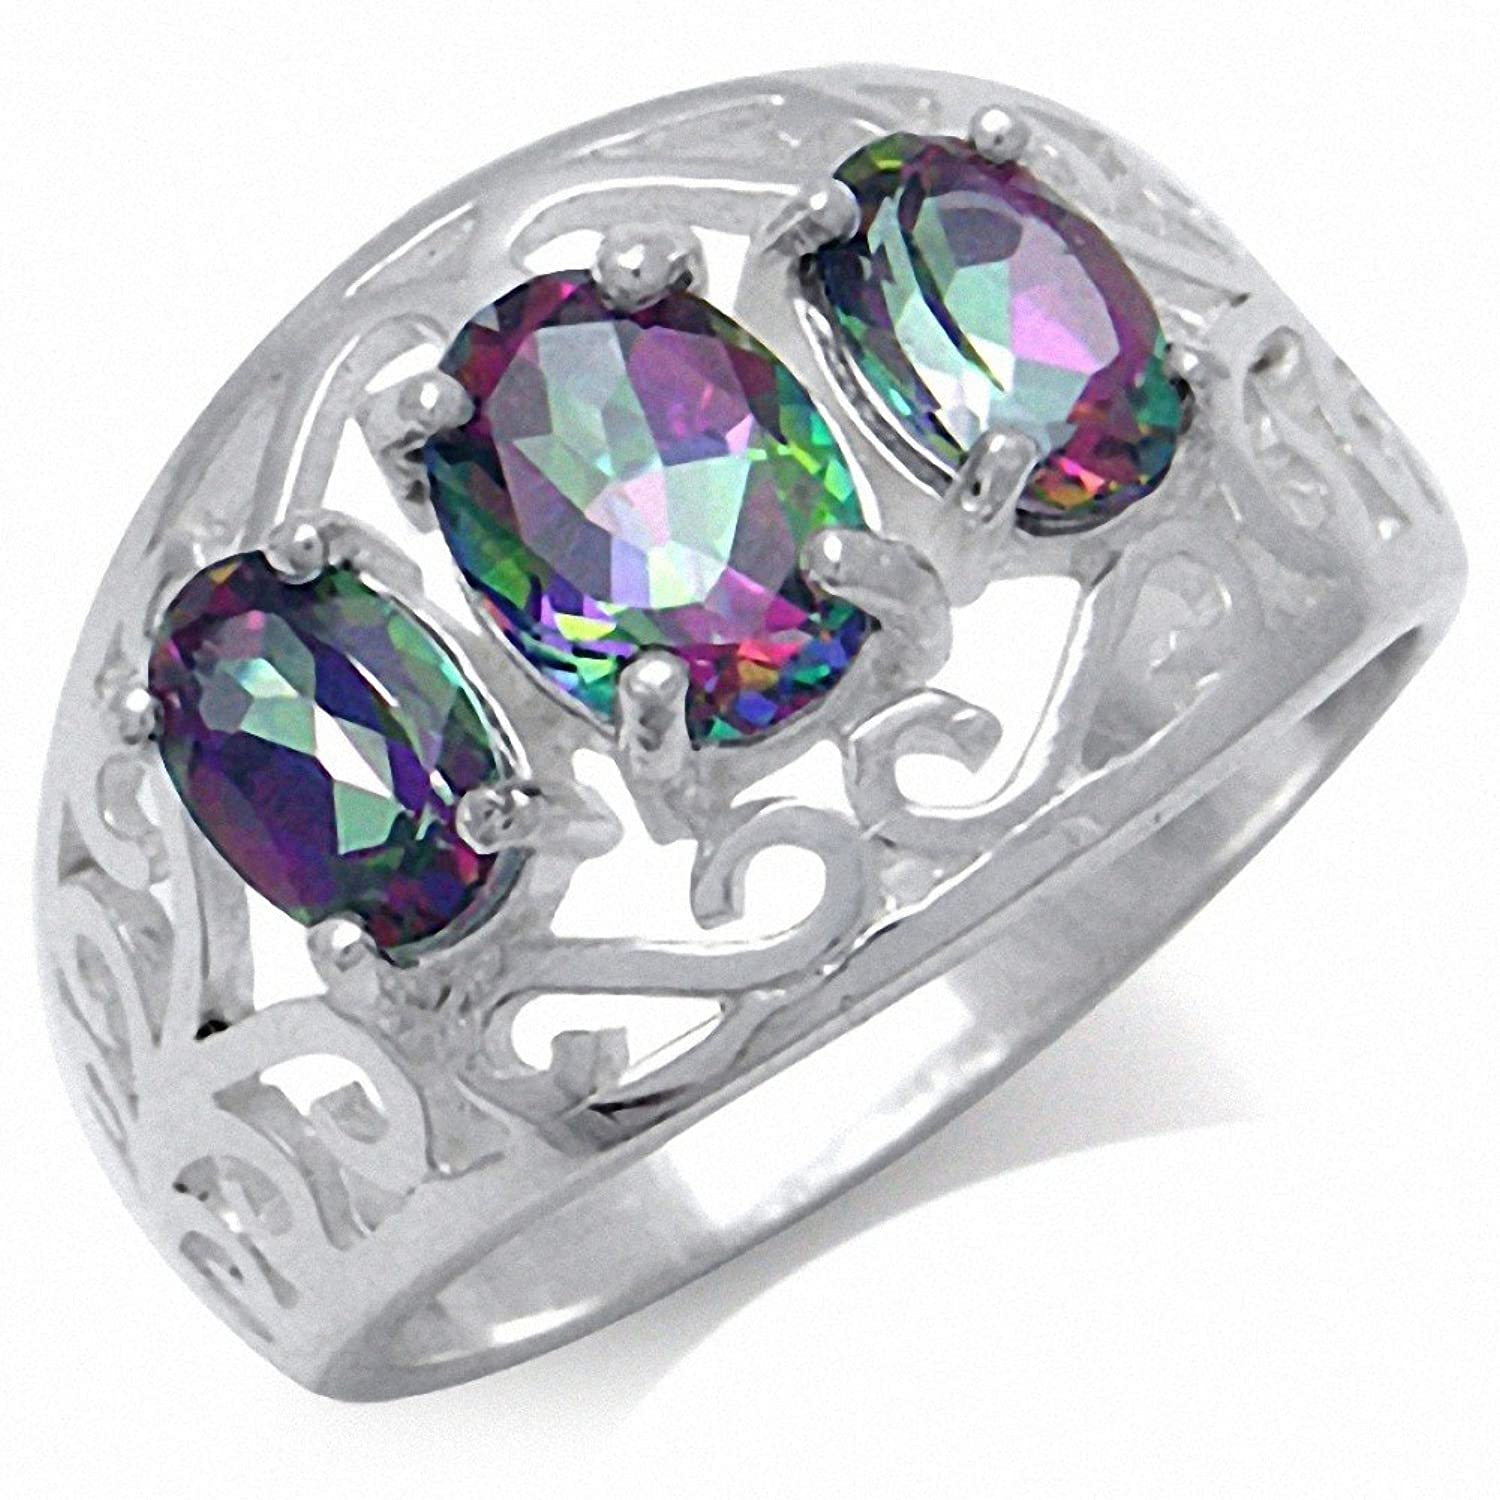 1.99ct. 3-Stone Mystic Fire Topaz 925 Sterling Silver Filigree Ring